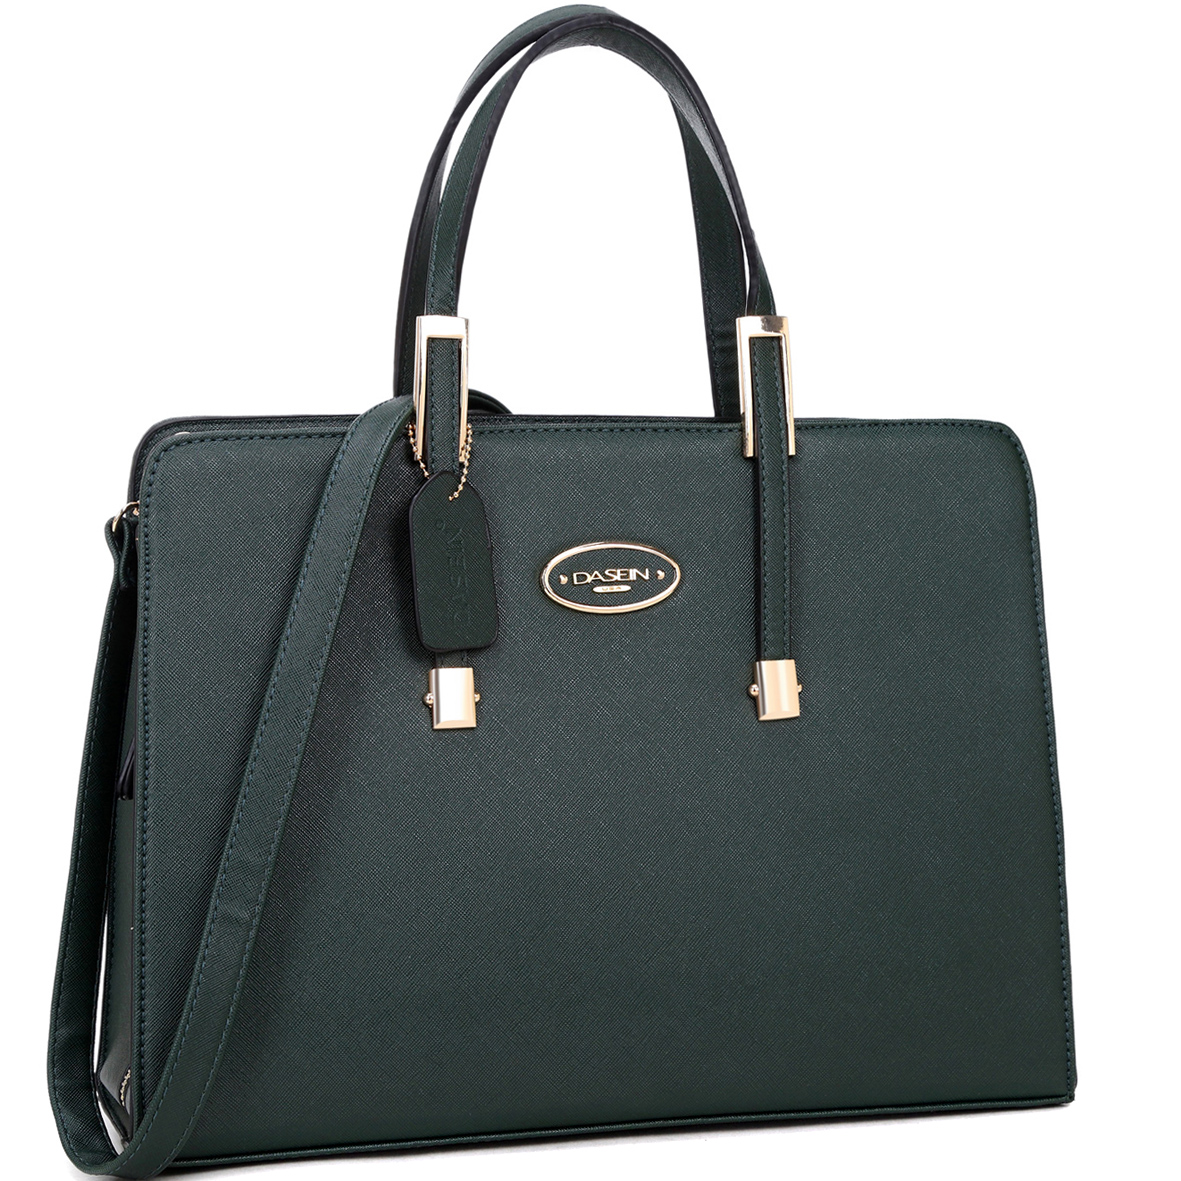 Dasein® Briefcase Tote with Removable Shoulder Strap